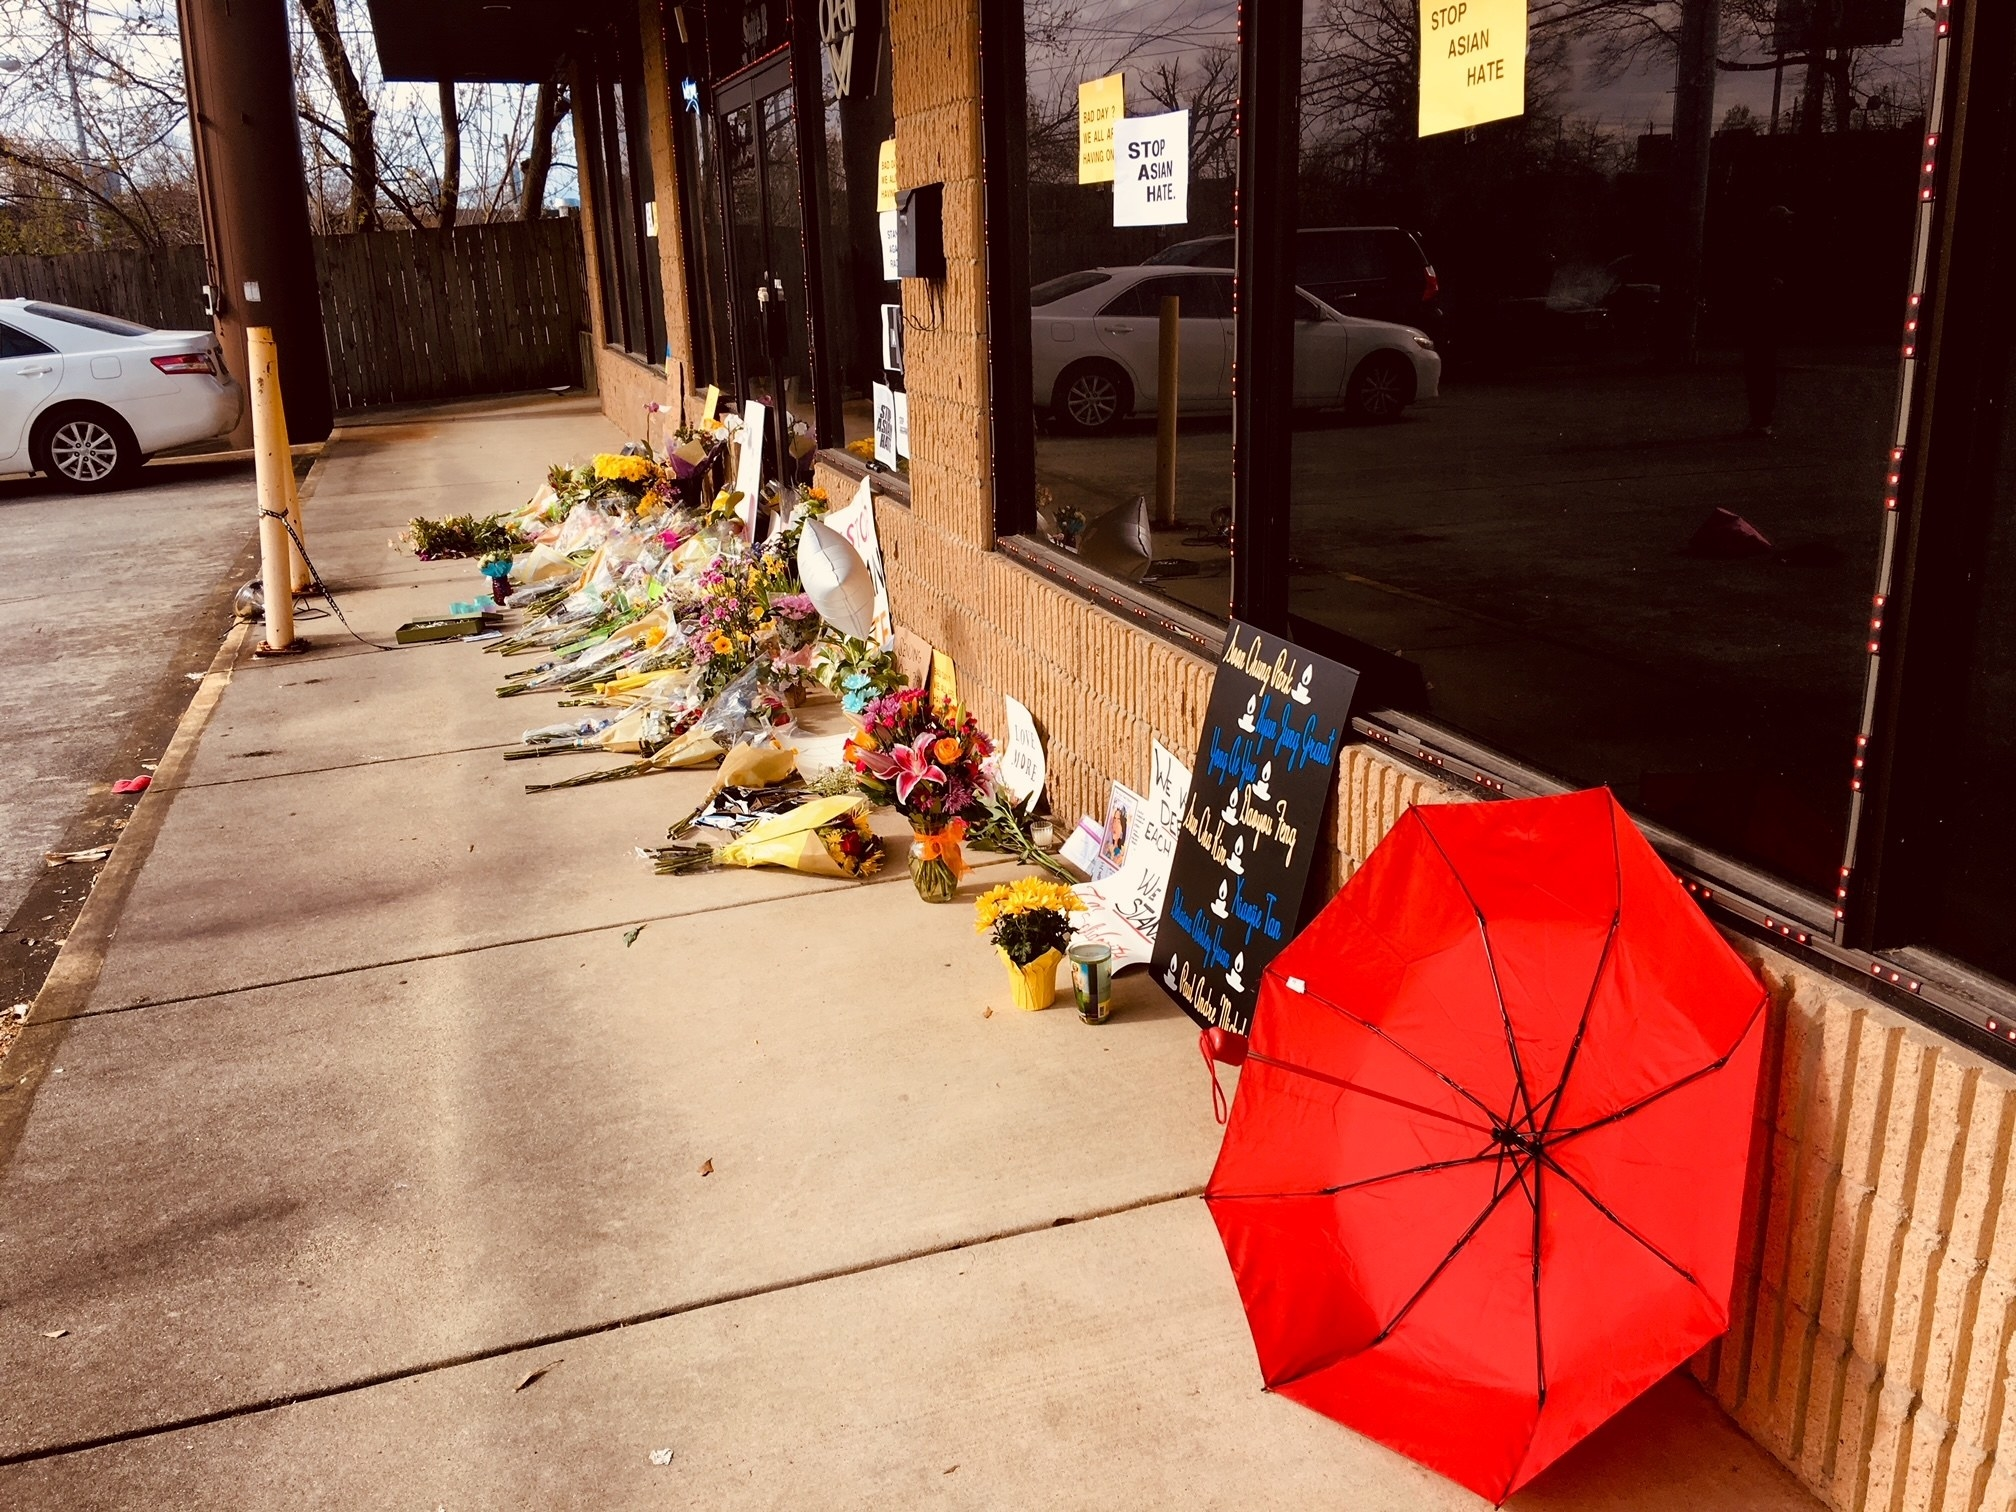 A red umbrella and memorials outside a storefront